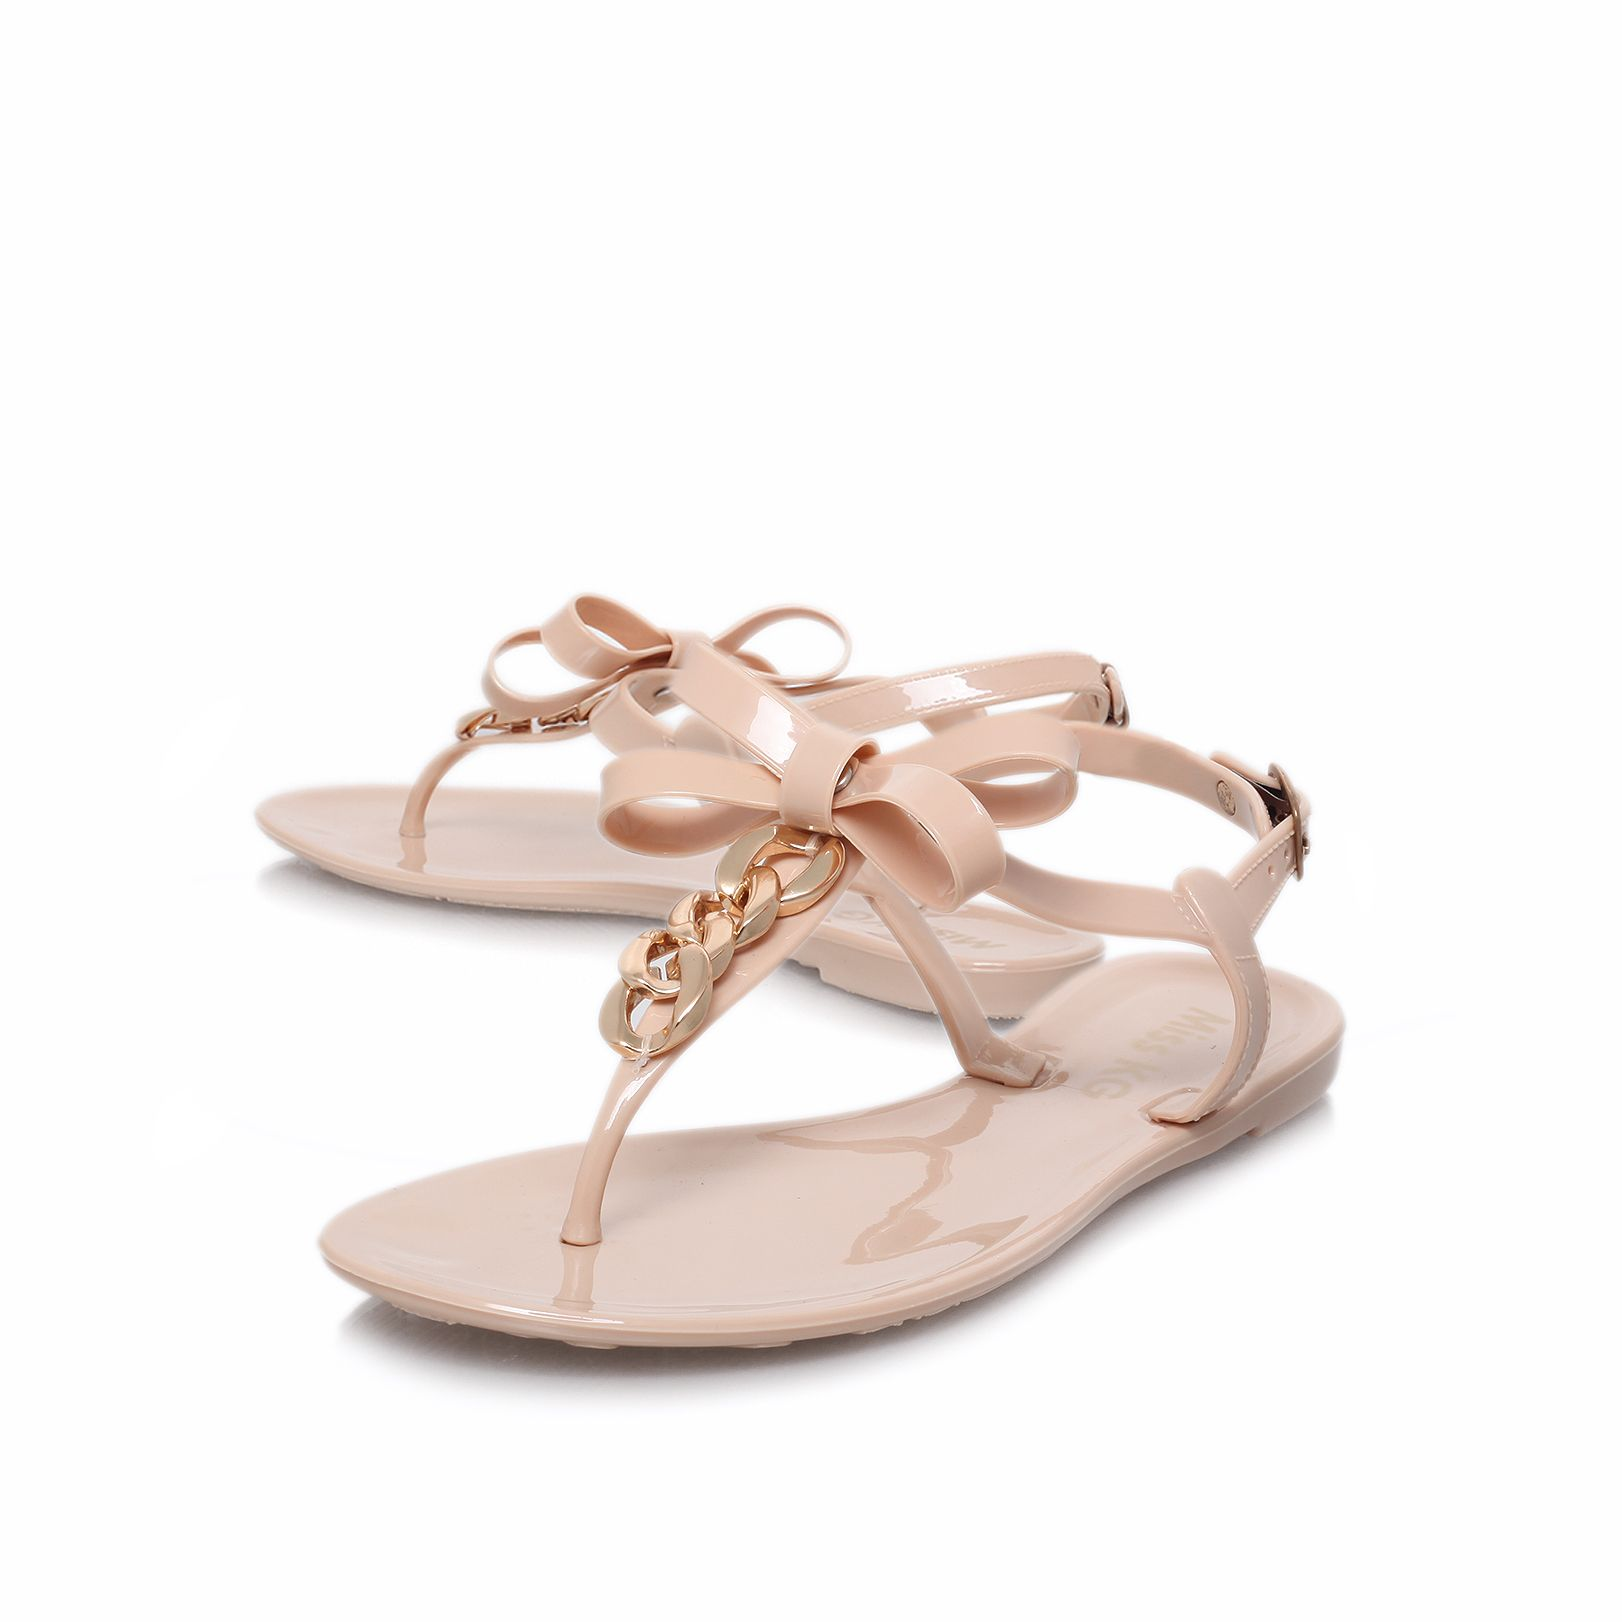 Dolly flat t-bar sandals